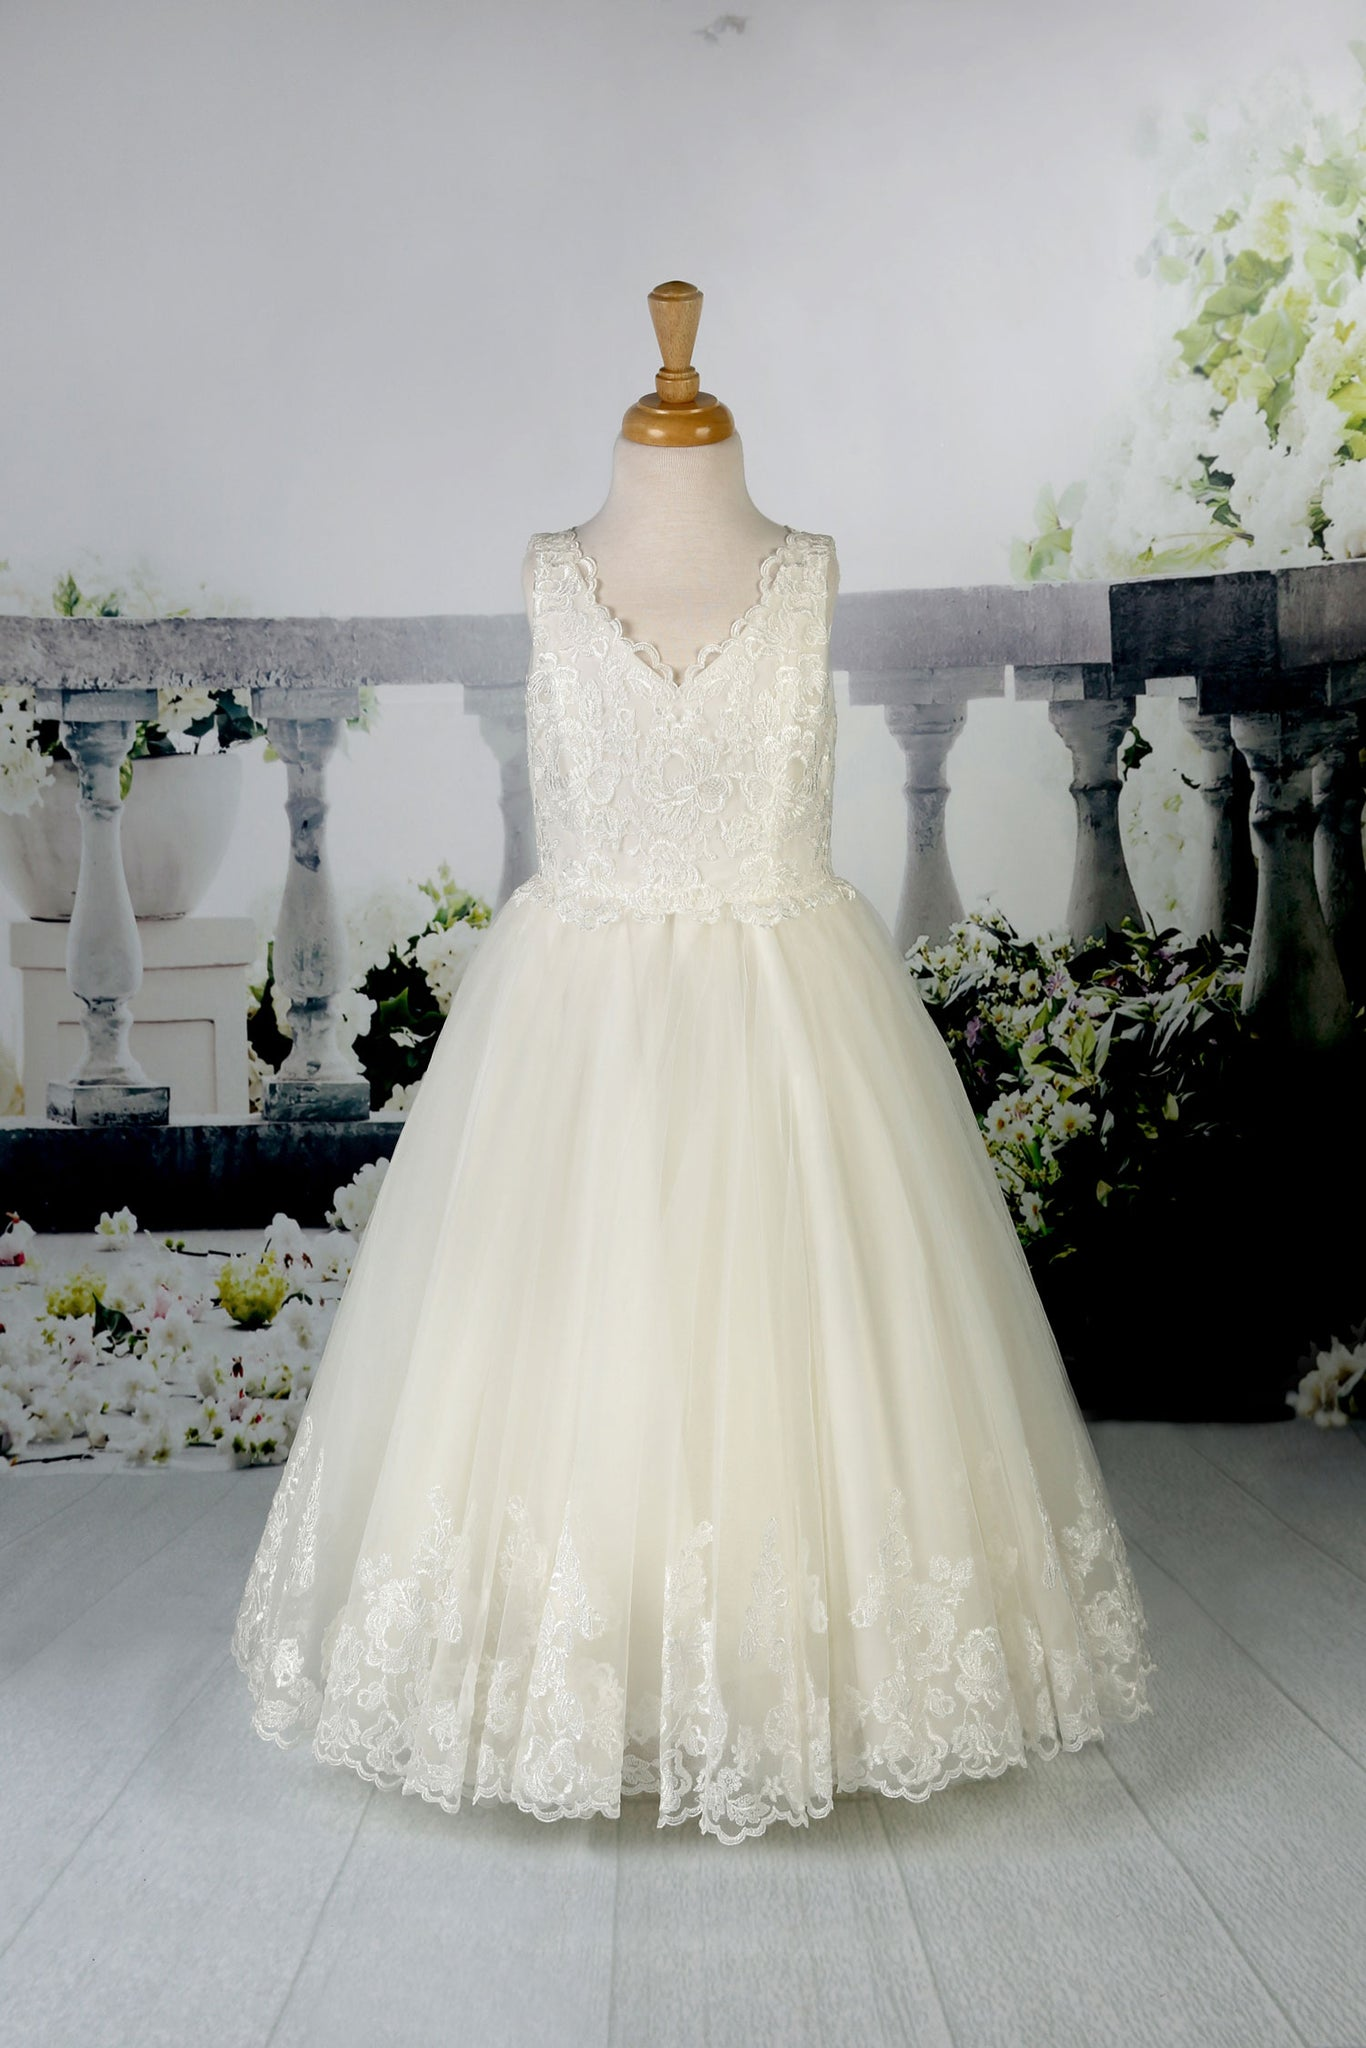 Stunning lace and tulle gown from the Emma Bridals collection